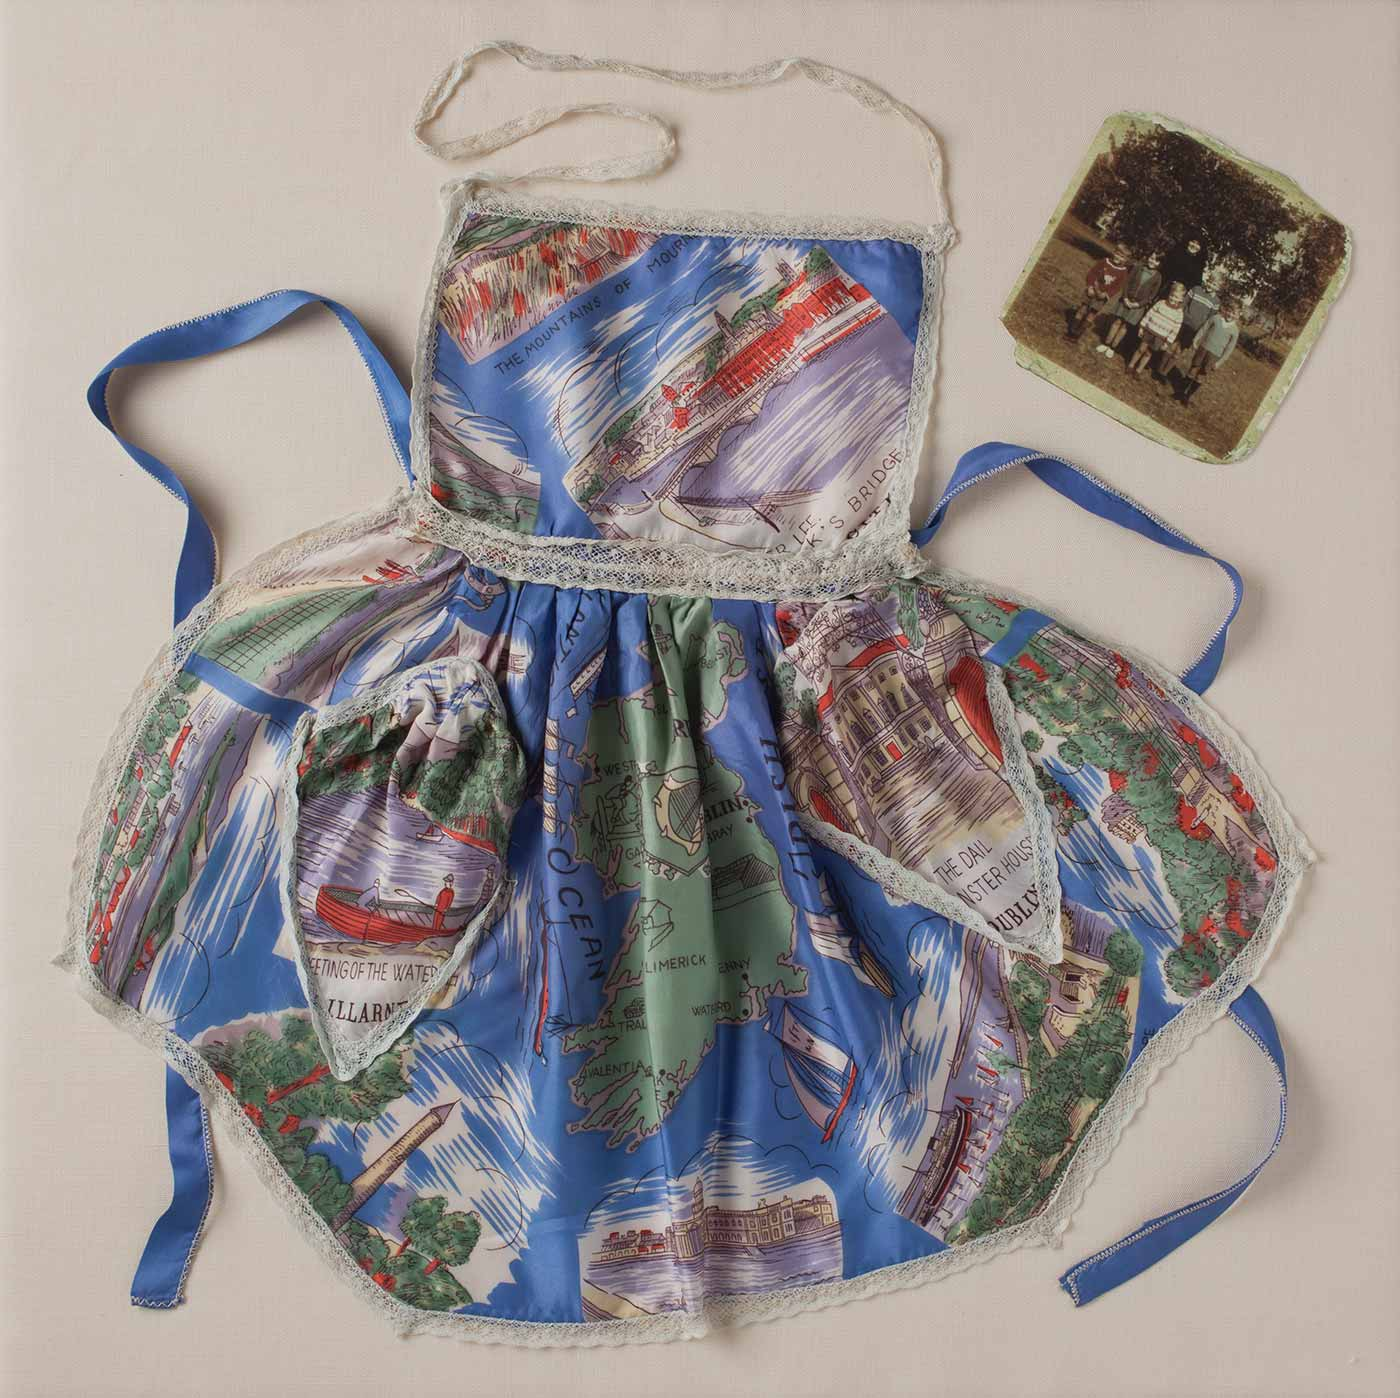 Child's apron in a silk fabric printed with a map of Ireland and sketched scenes of Irish landmarks and landscapes. - click to view larger image